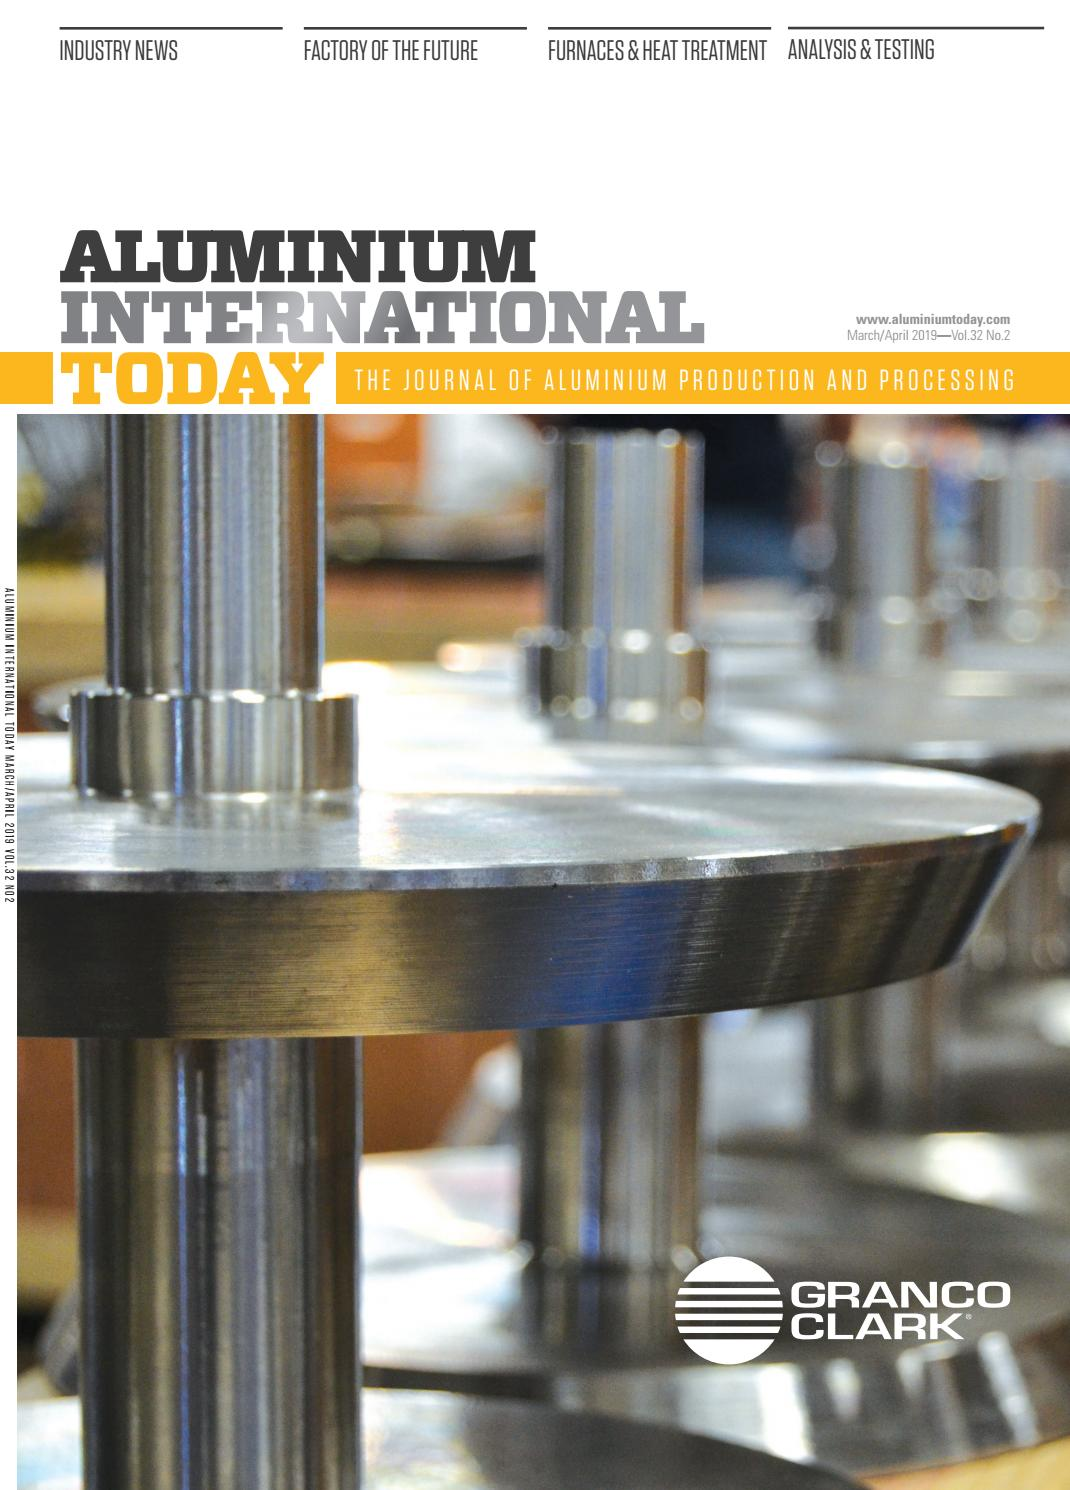 Aluminium International Today March 2019 by Quartz Business